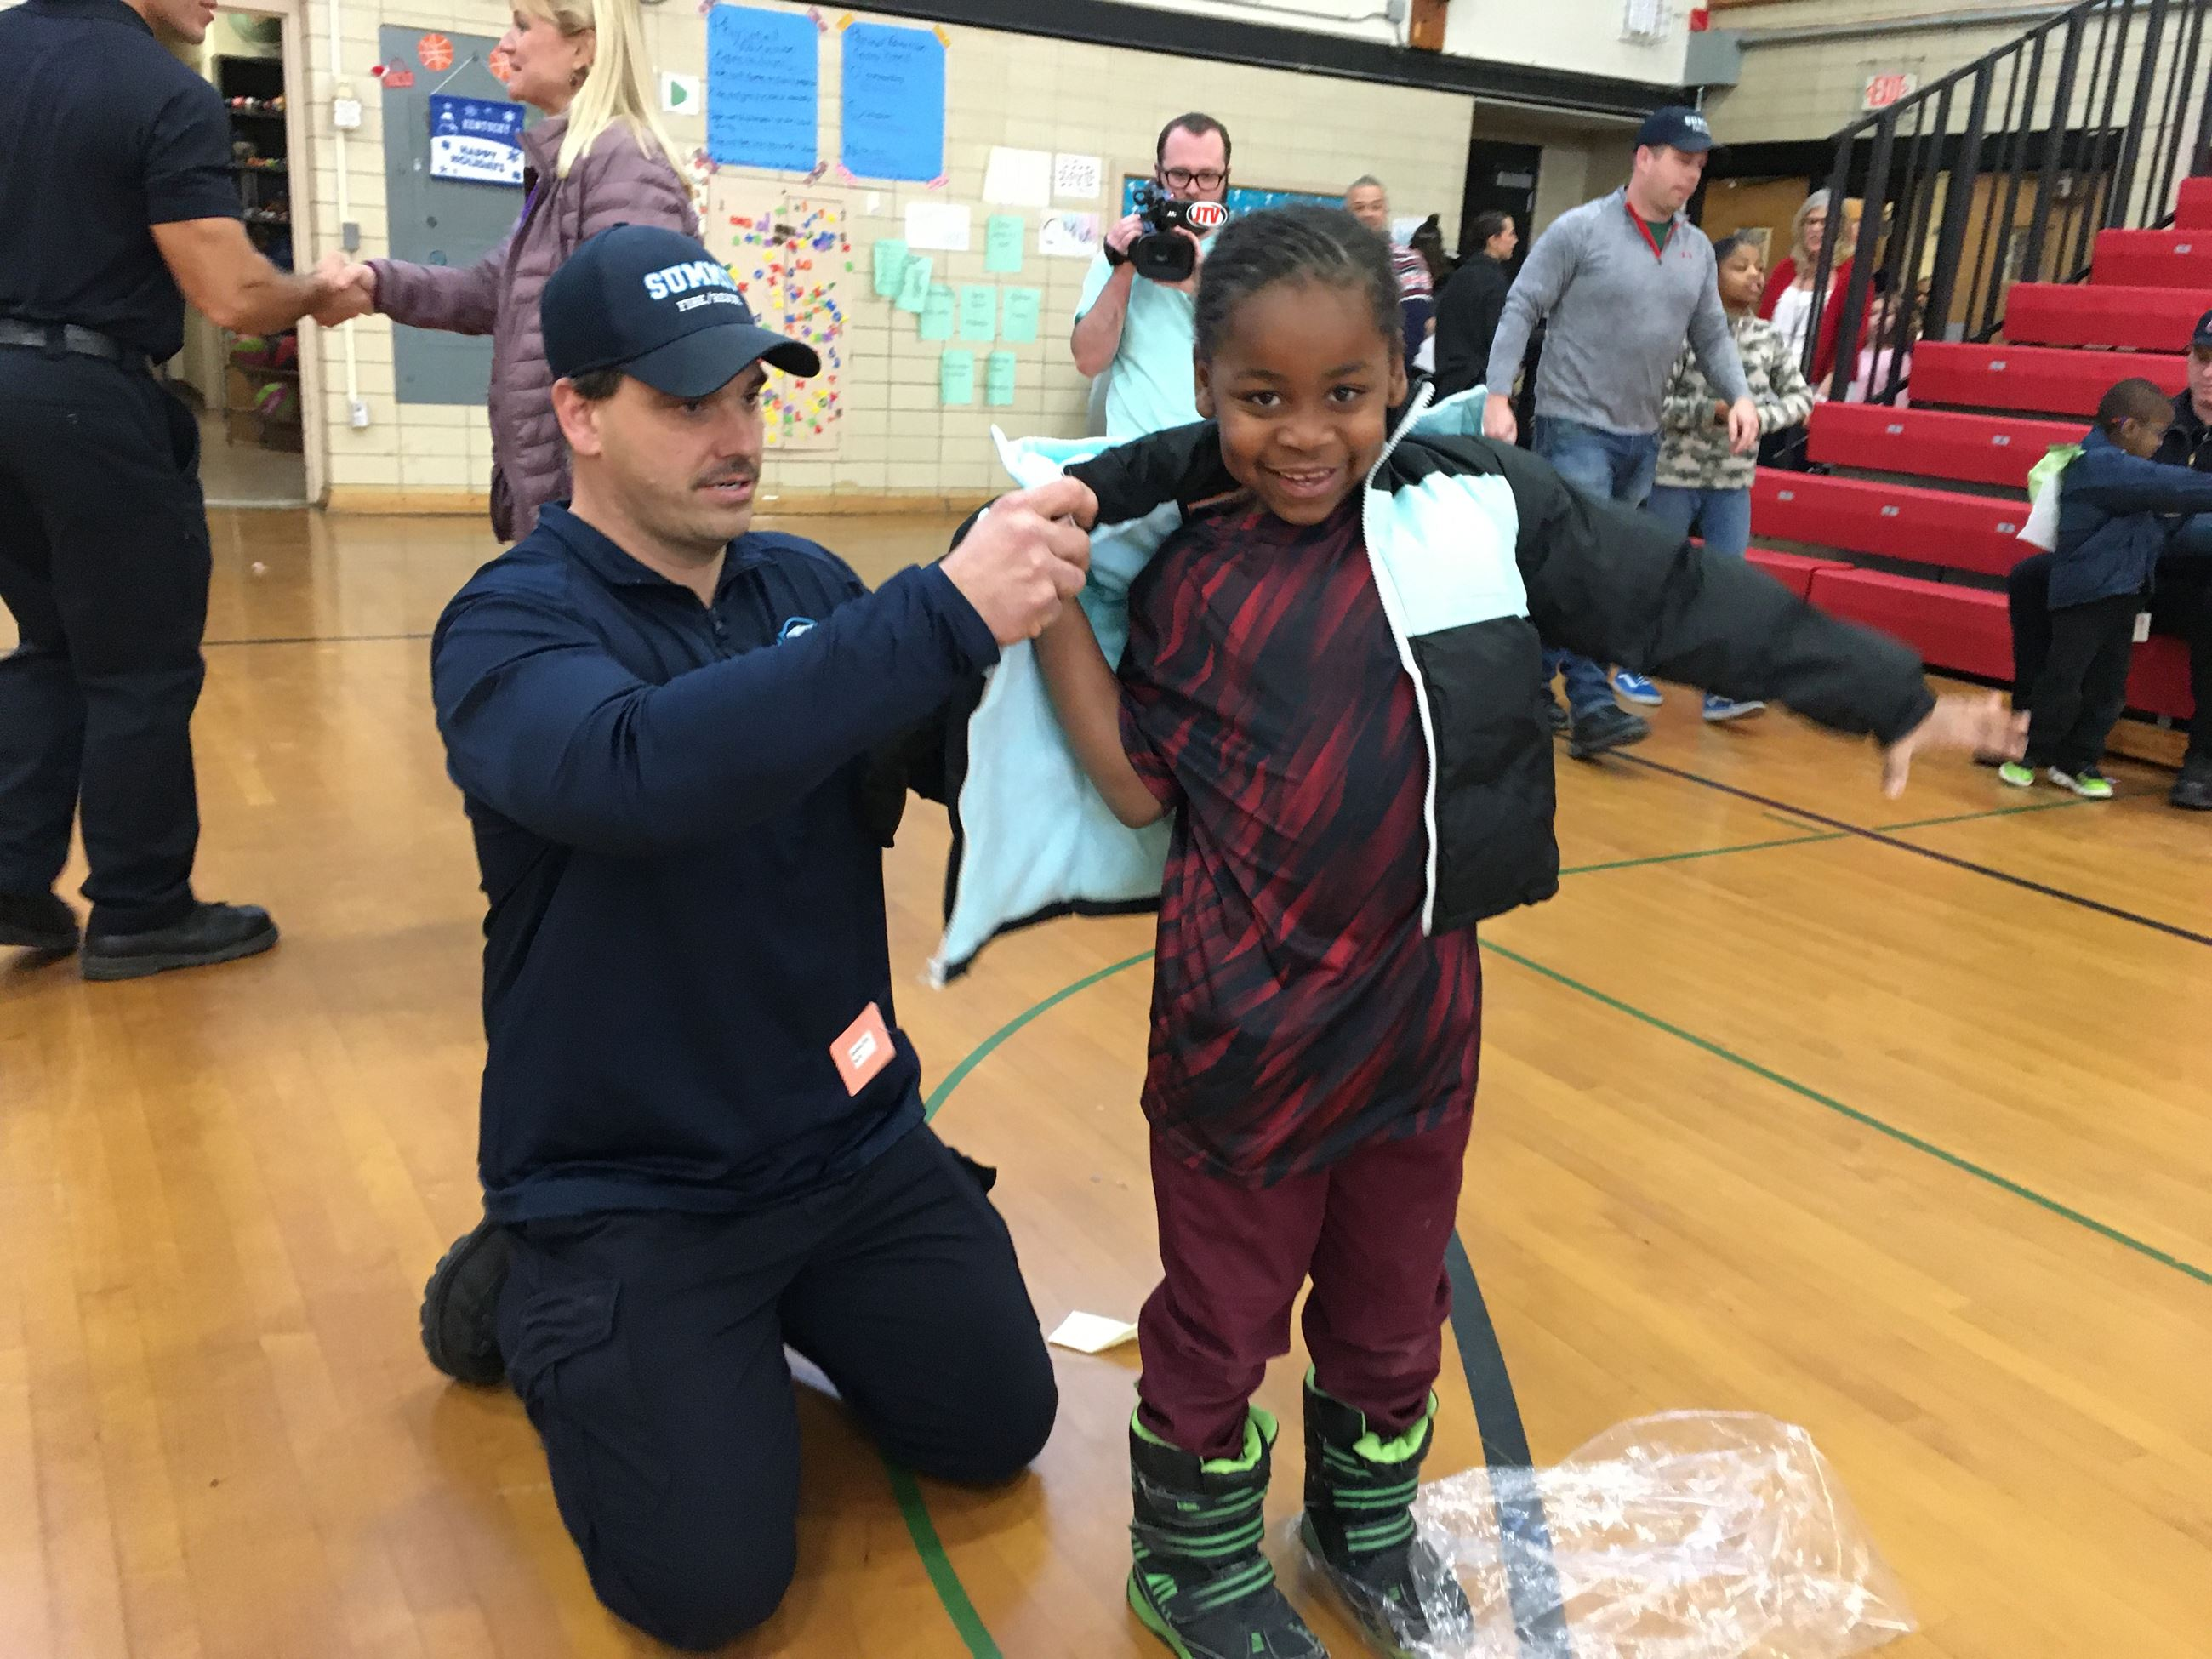 A little boy smiles as a firefighter helps him try on a coat